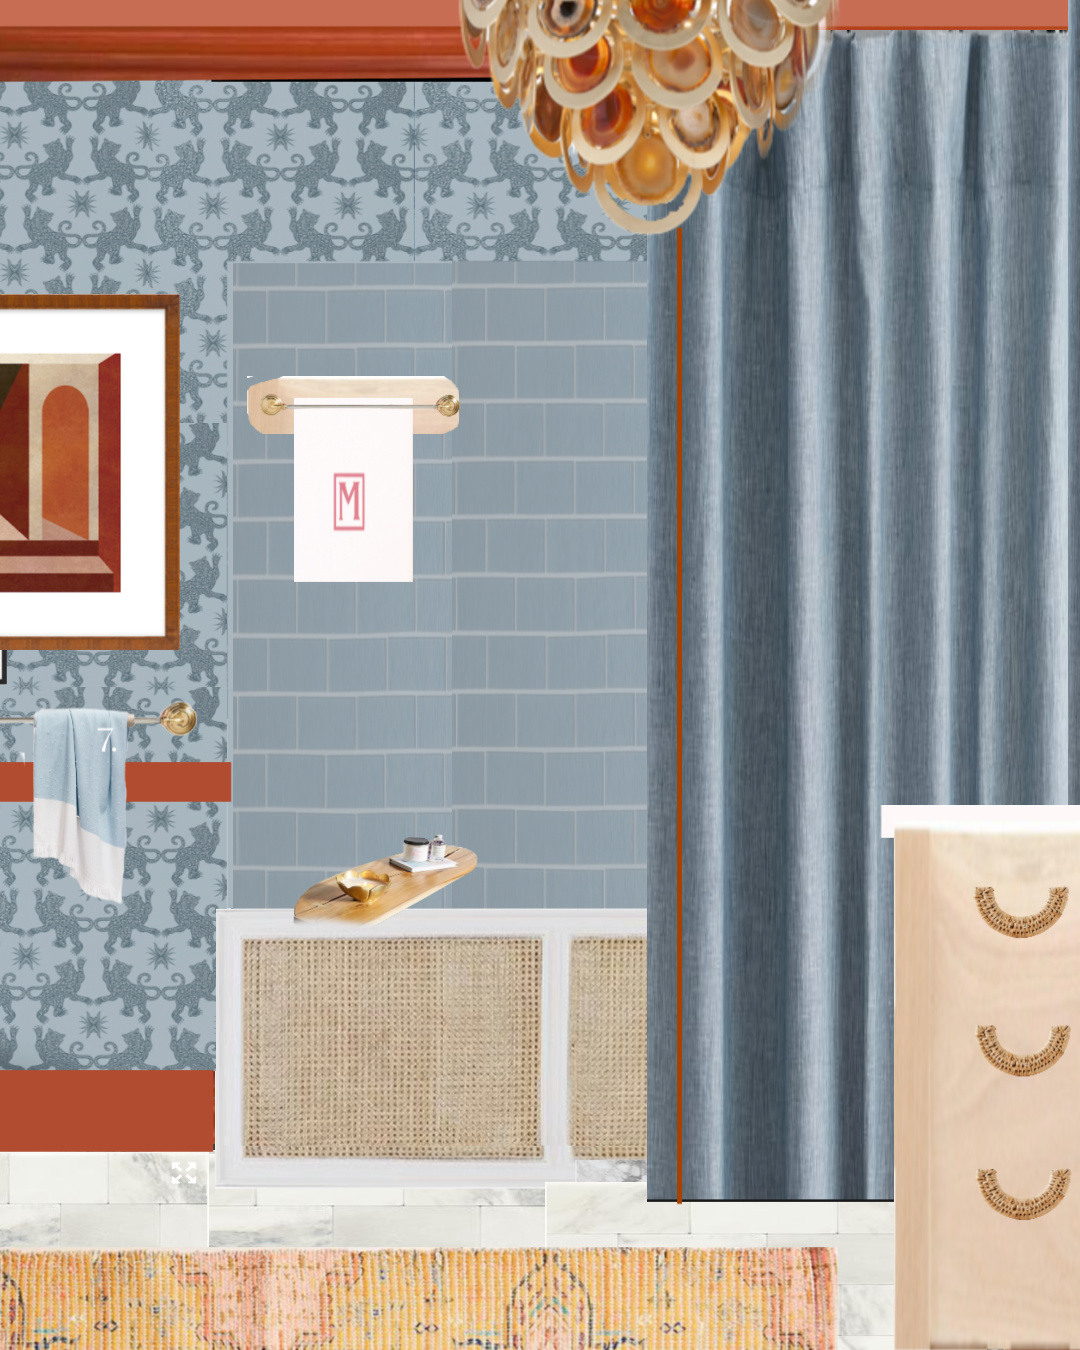 Jeweled Interiors Fall 2018 One Room Challenge, before pics, colonial, piano, living room, dining room, entertaining space, miles redd, Jonathan Adler, ideas, before shots, Metrie, spoonflower, build.com, architectural depot, art, Milton and King, Viva Tropicana. Kelly Wearstler